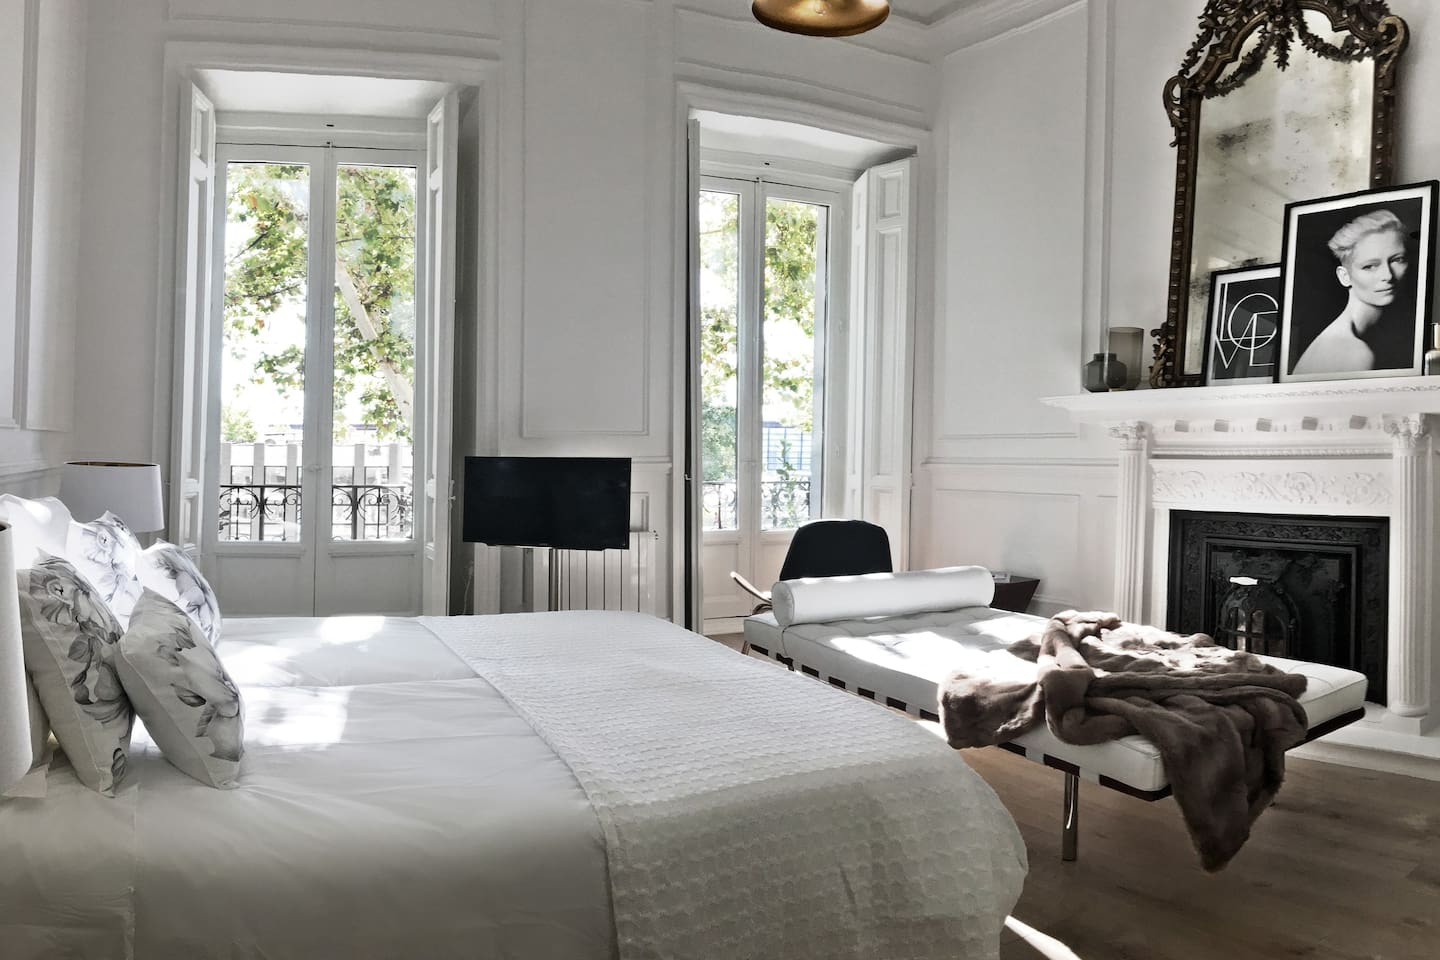 Vista del dormitorio y balcones. Cuenta con dos camas individuales de viscolatex, y una cama supletoria (DayBed) de Mies Van der Rohe. La cama supletoria se proporciona con un colchón extra de viscolatex para mayor comodidad.  ______ View of bedroom and balconies. It has two single viscolatex beds, and an extra bed (DayBed) of Mies Van der Rohe. The extra bed is provided with an extra viscolatex mattress for extra comfort.